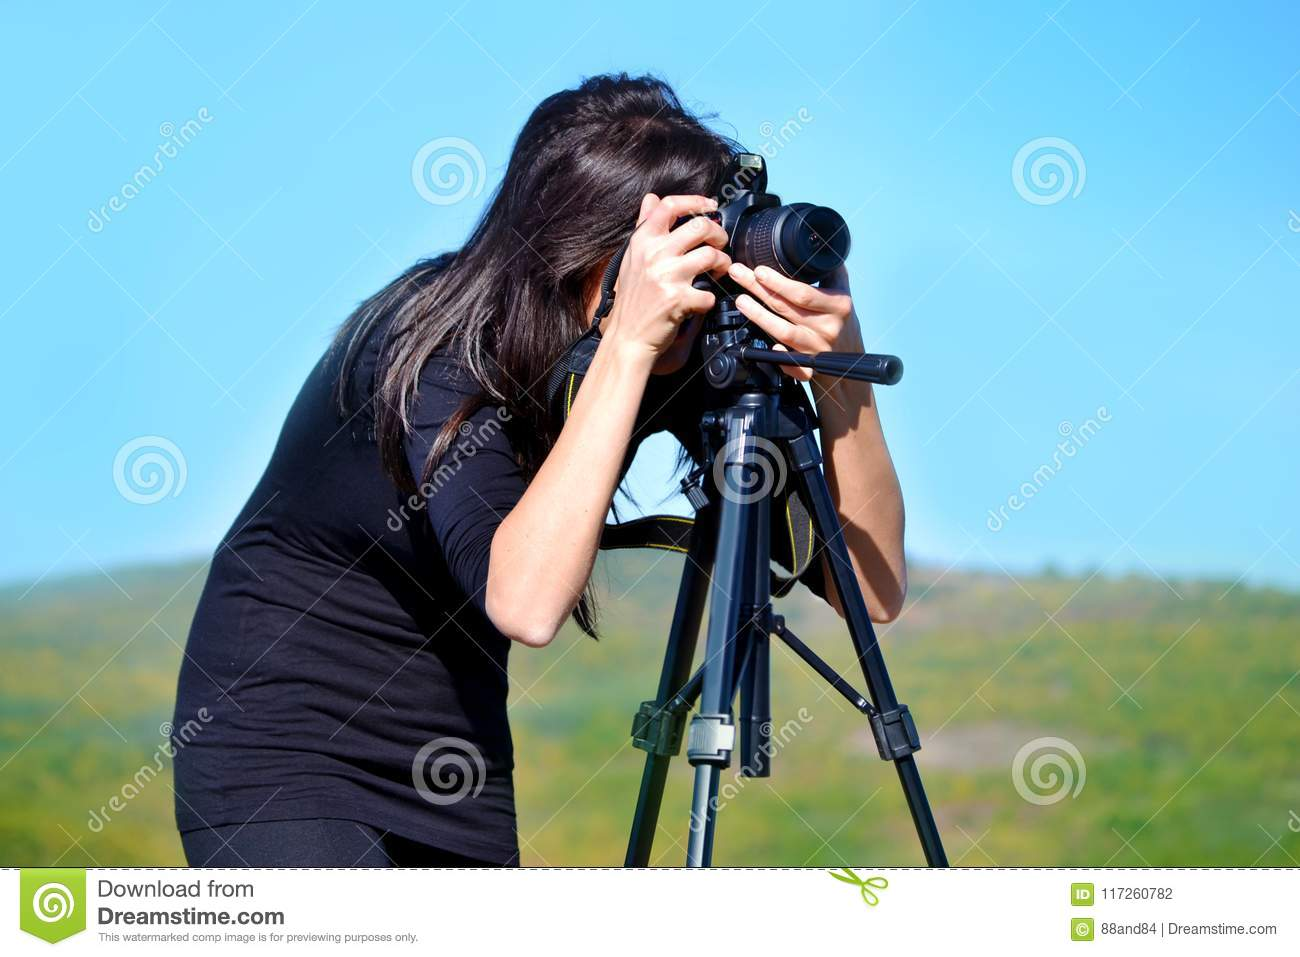 Woman Photographer Taking Photos with Digital Camera and Tripod